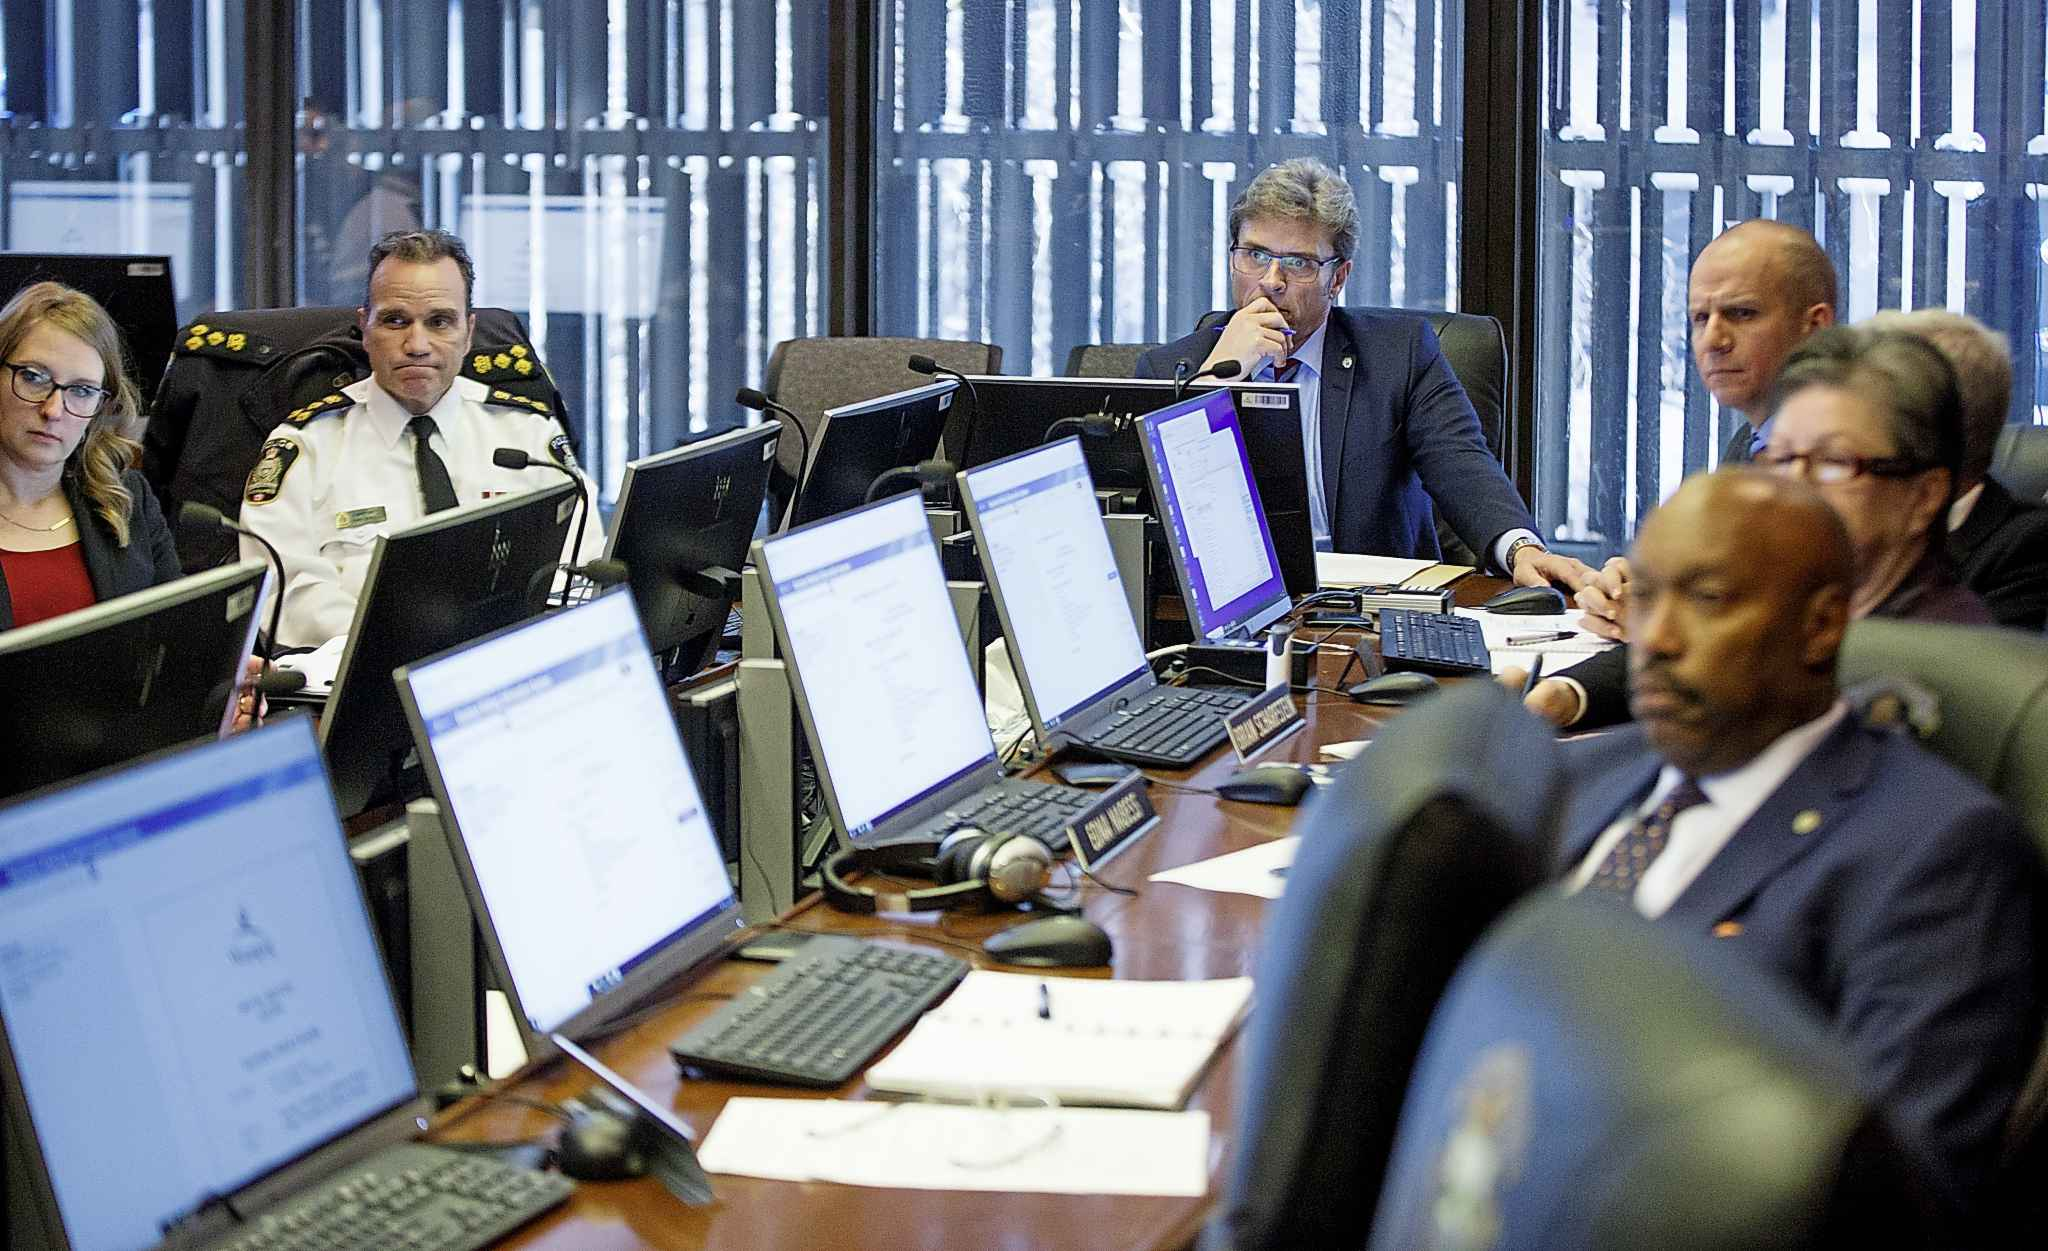 The Winnipeg Police Board in November heard presentations from the public on proposed cuts to the police service. (Mike Deal / Winnipeg Free Press files)